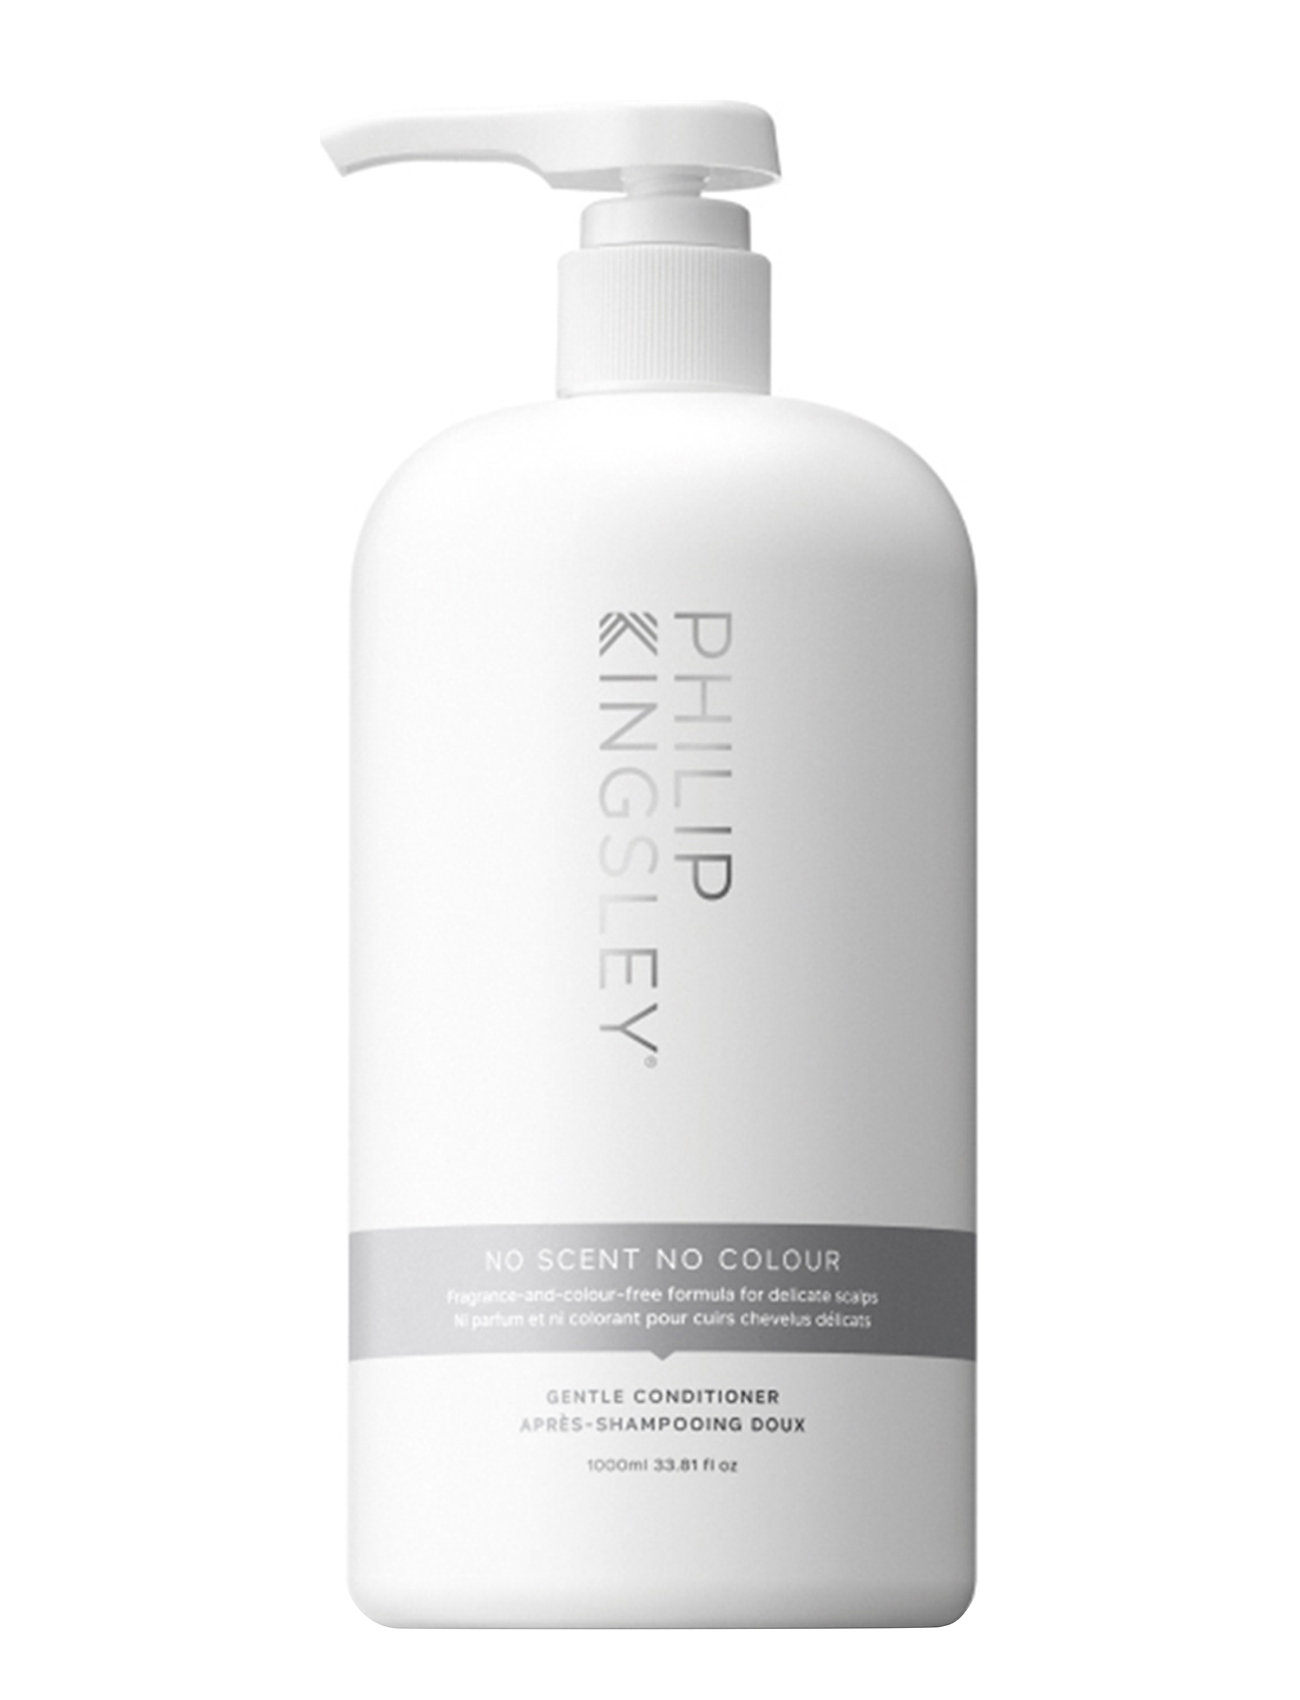 Philip Kingsley NO SCENT NO COLOUR CONDITIONER - CLEAR